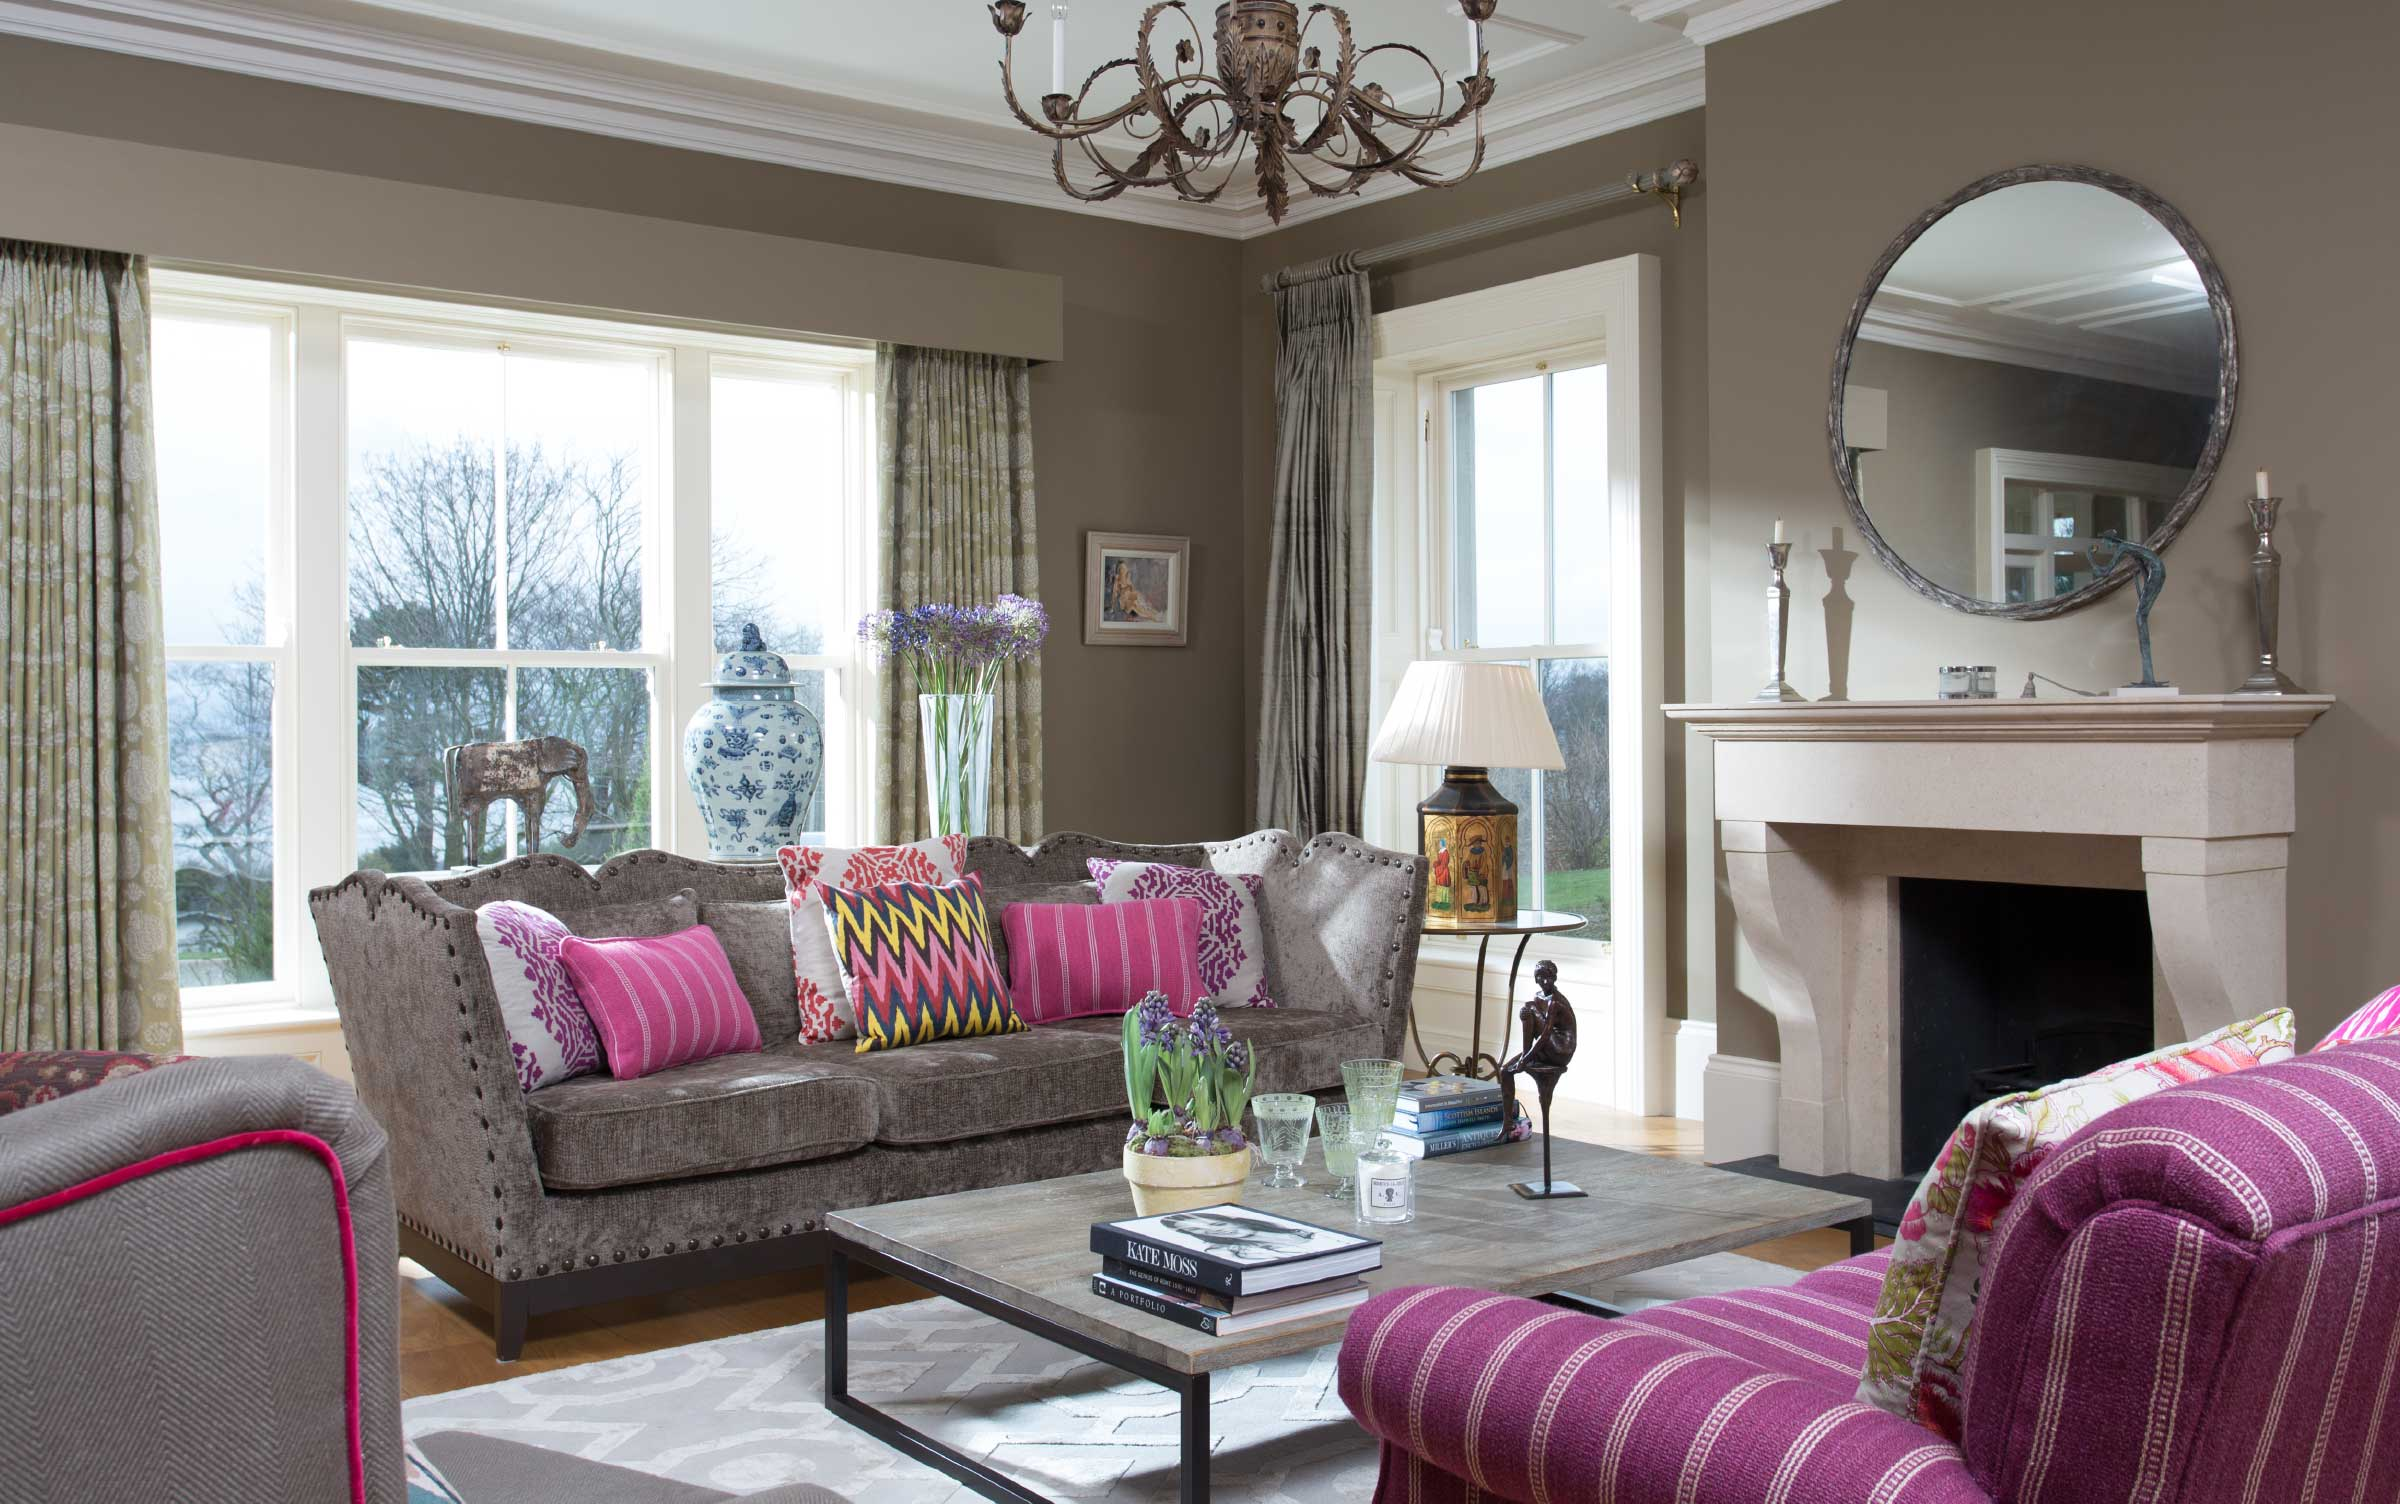 Manor house interior design thompson clarke northern ireland